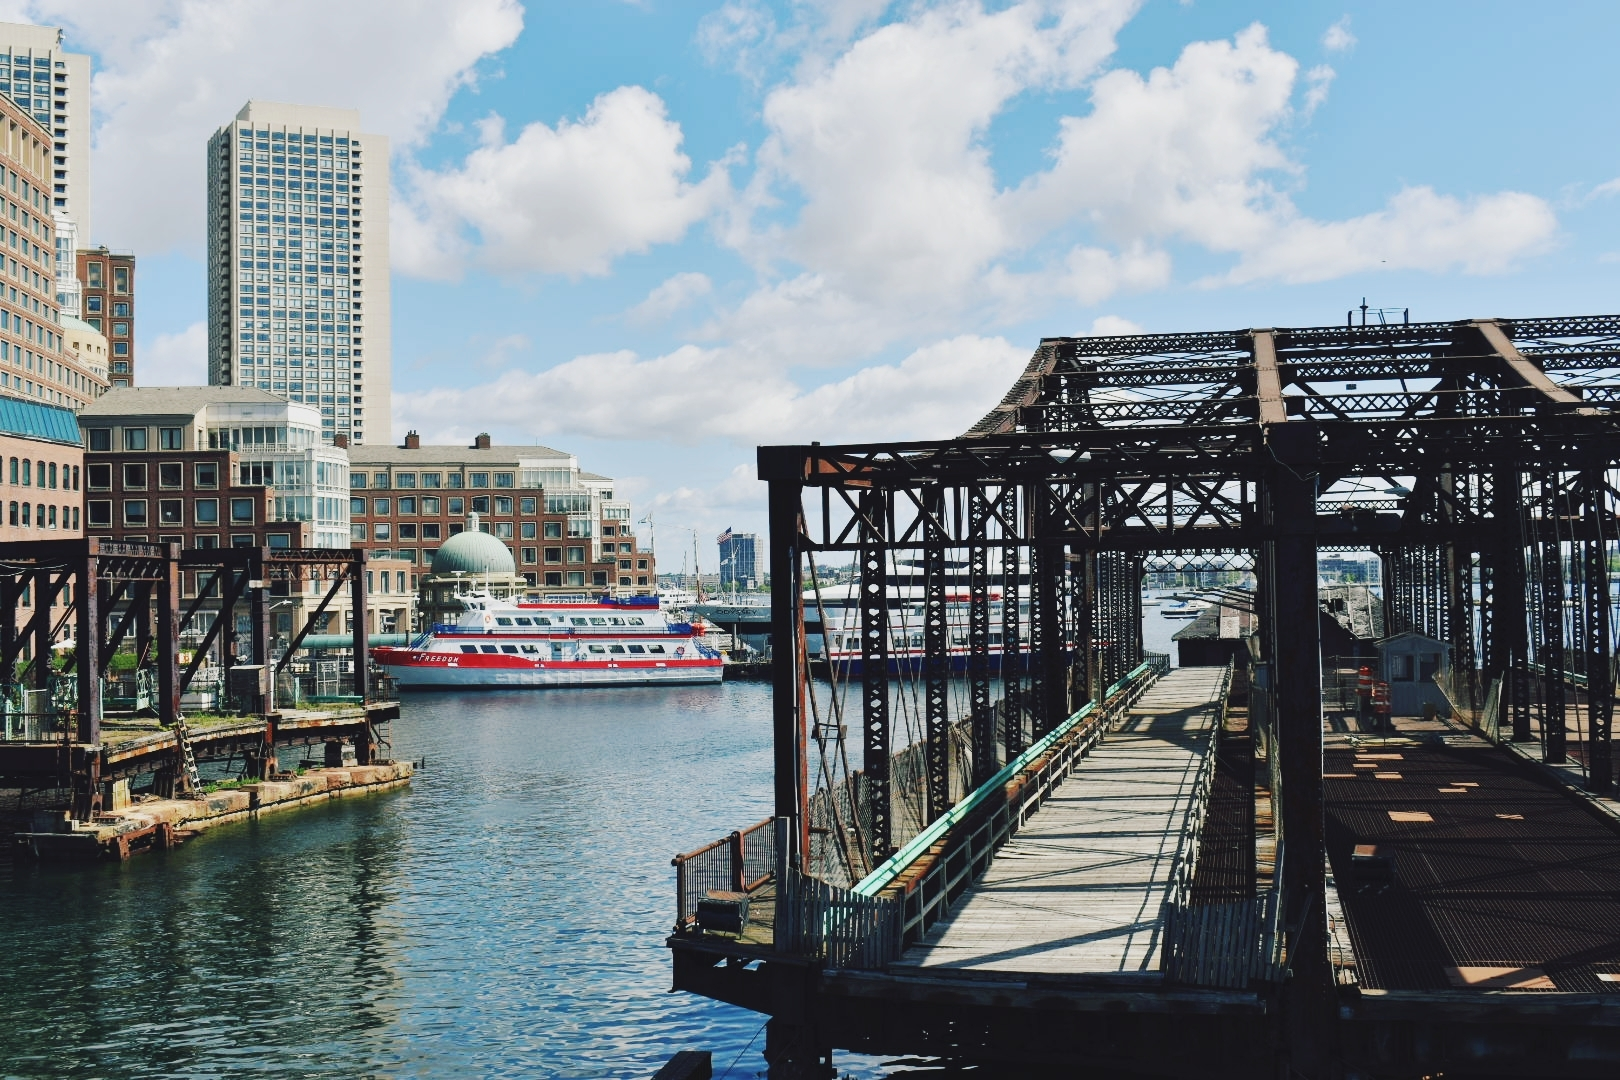 The Northern Avenue Bridge in Fort Point Channel